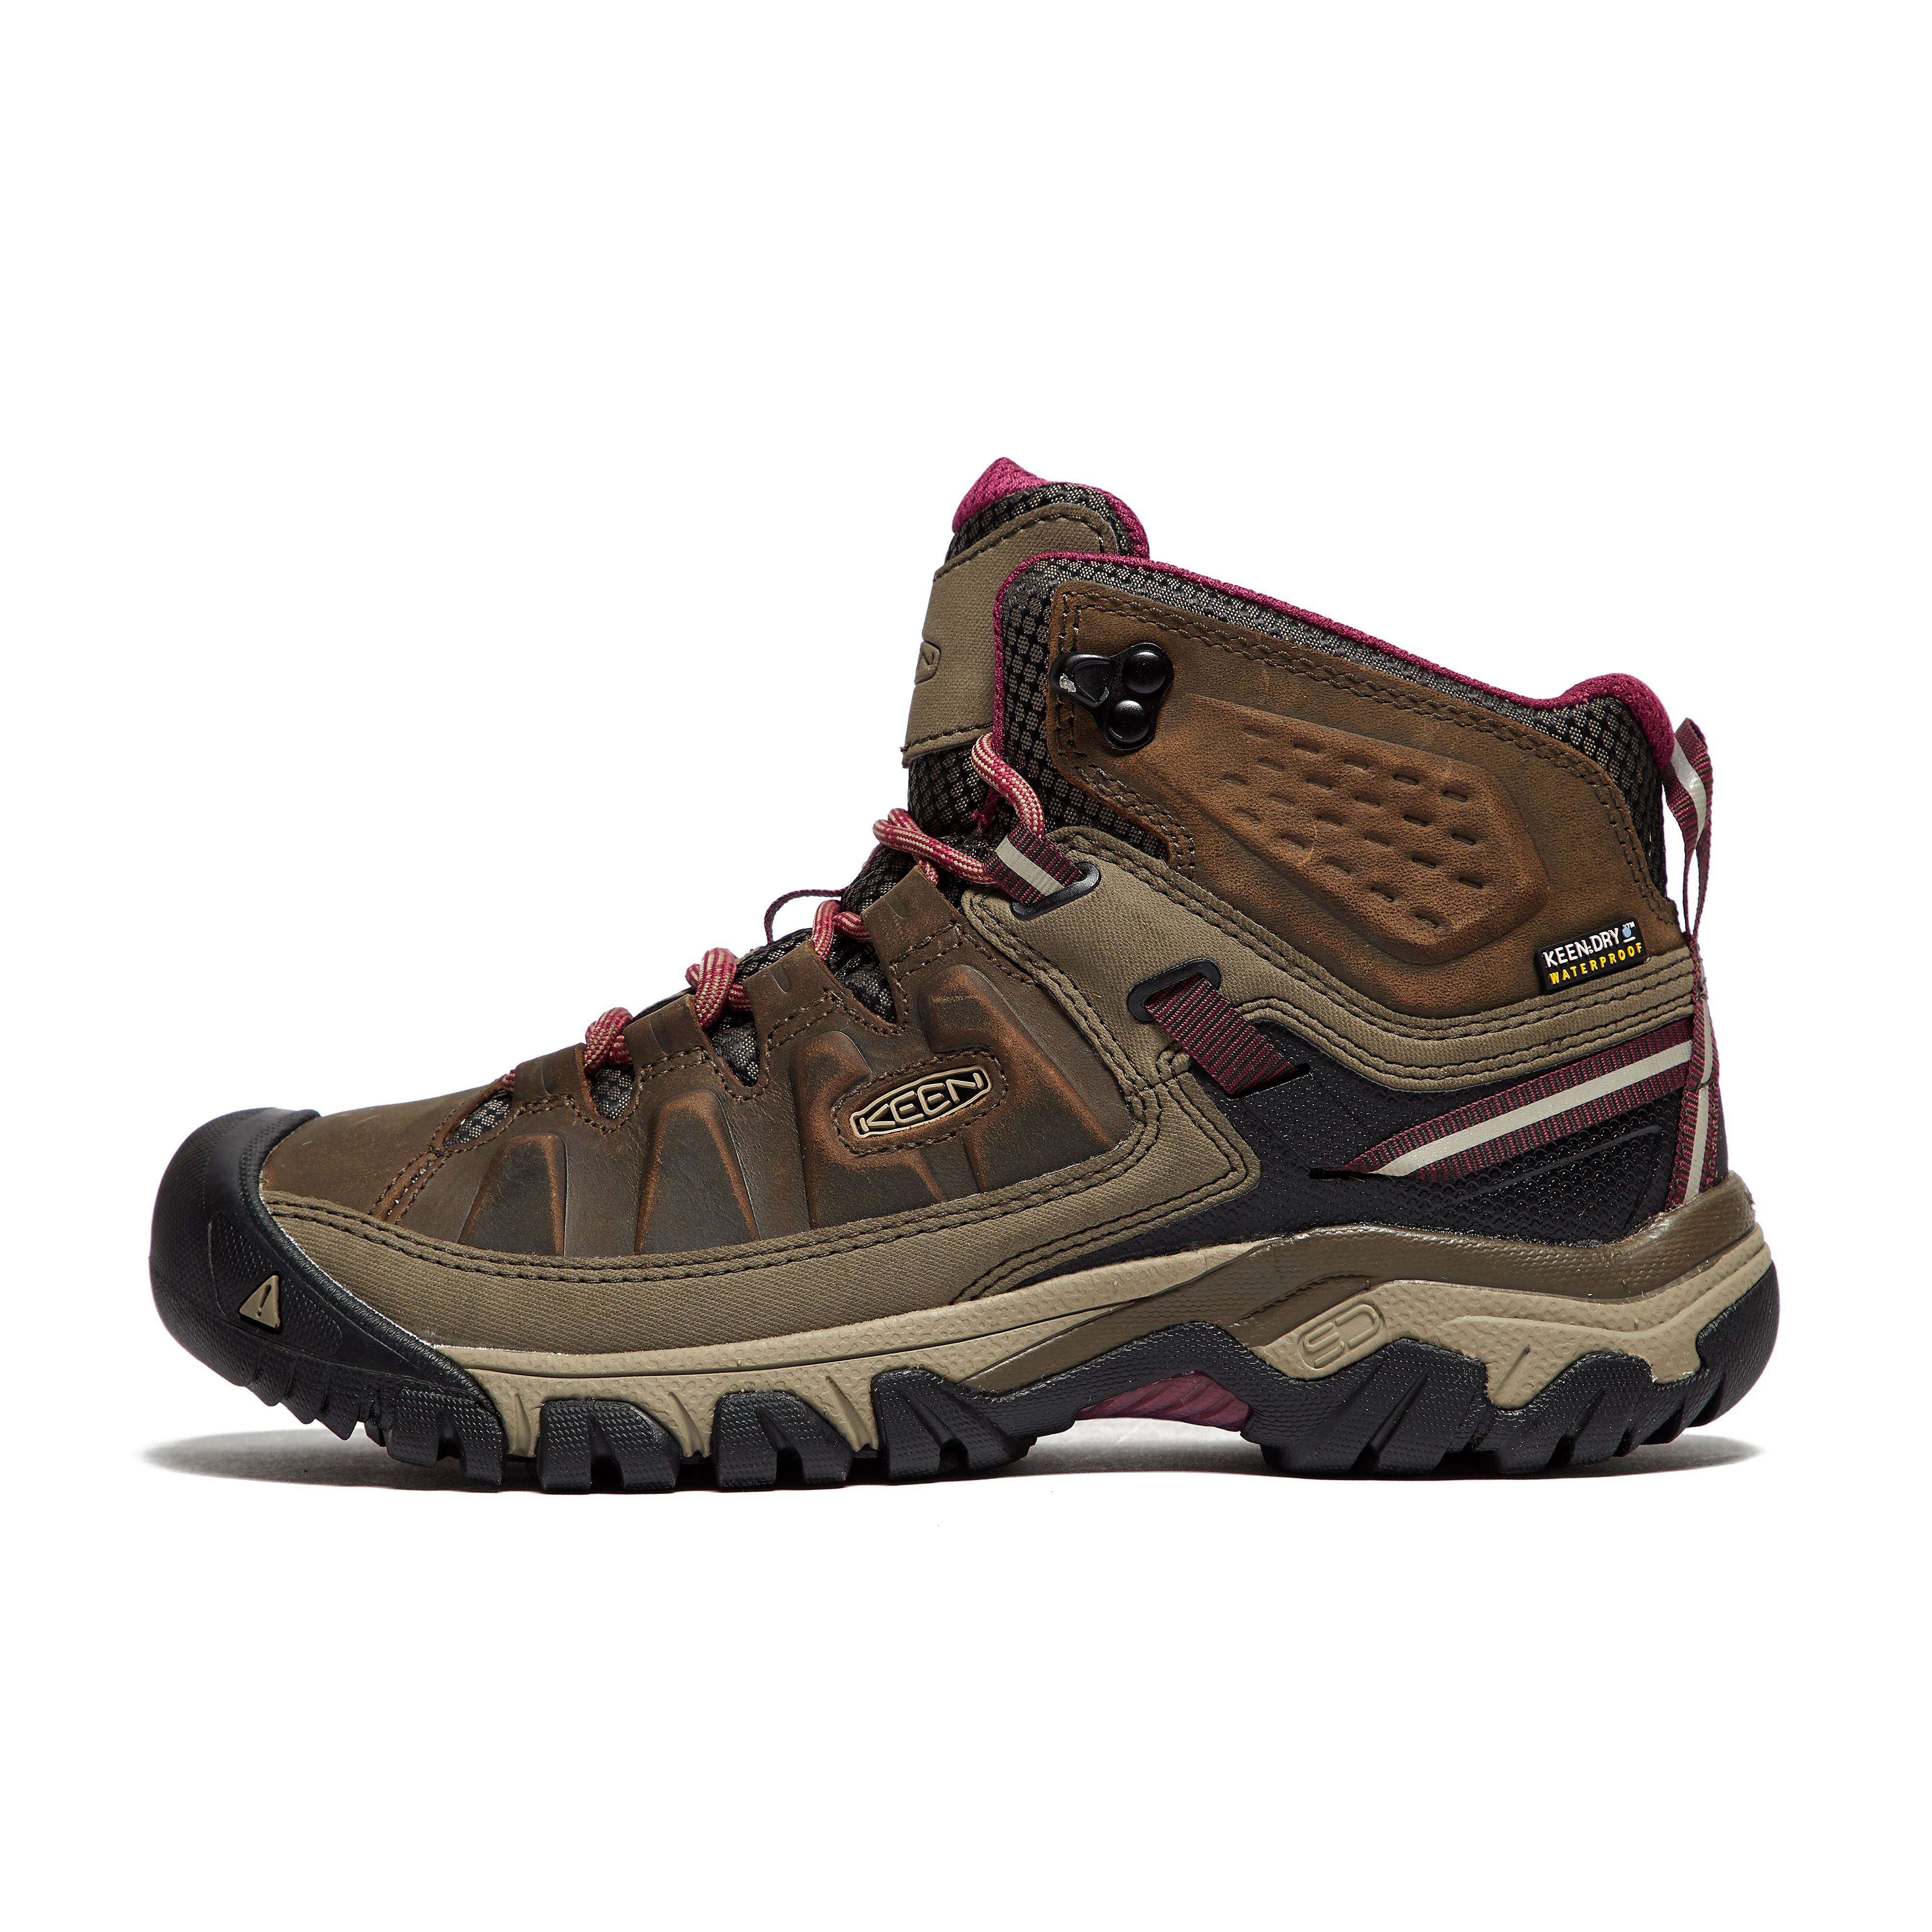 Keen Targhee III Mid Waterproof Women's Walking Boots